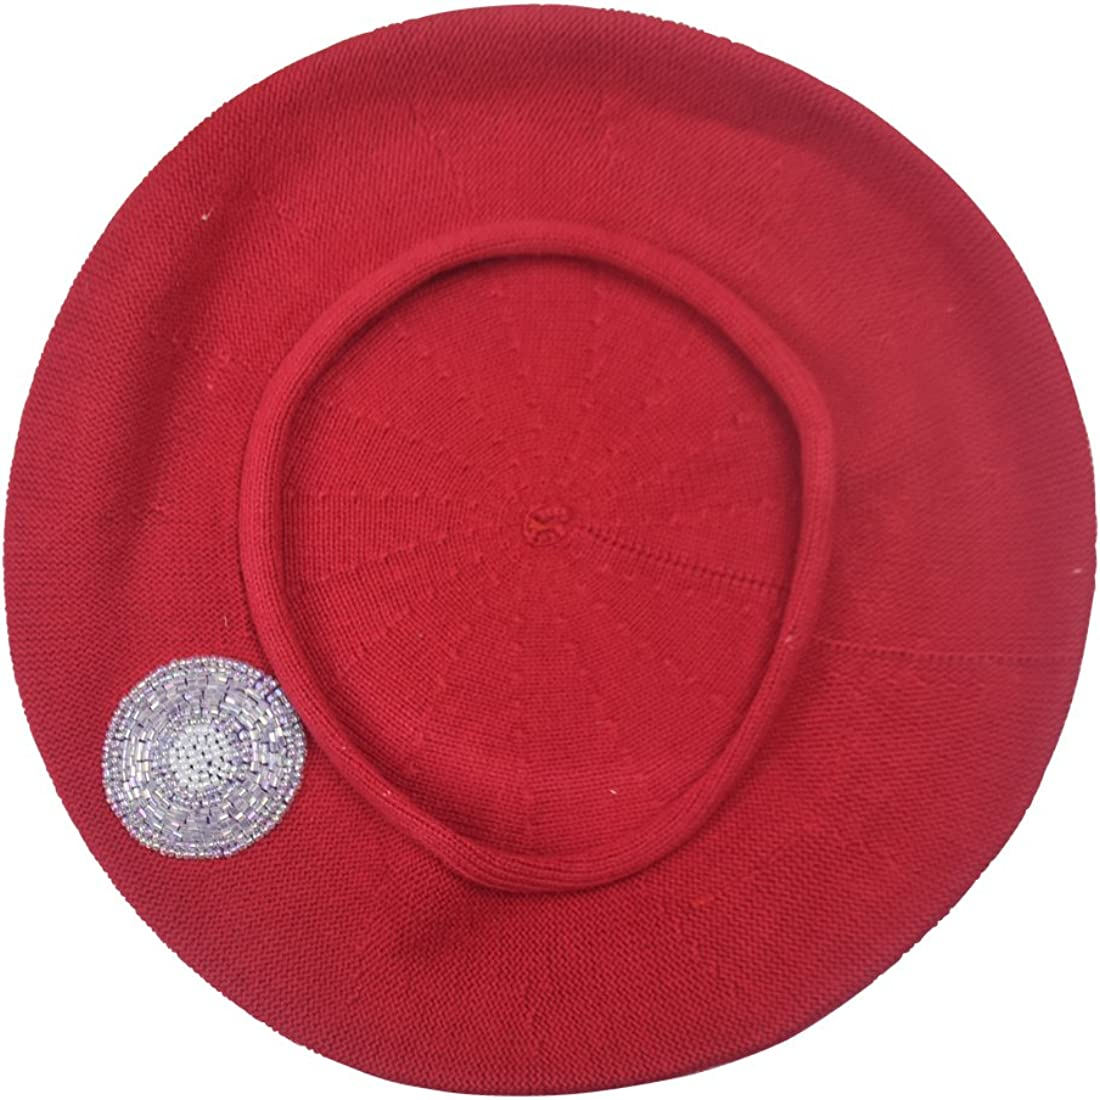 Beaded Lavender Circle on Beret for Women 100% Cotton - Red